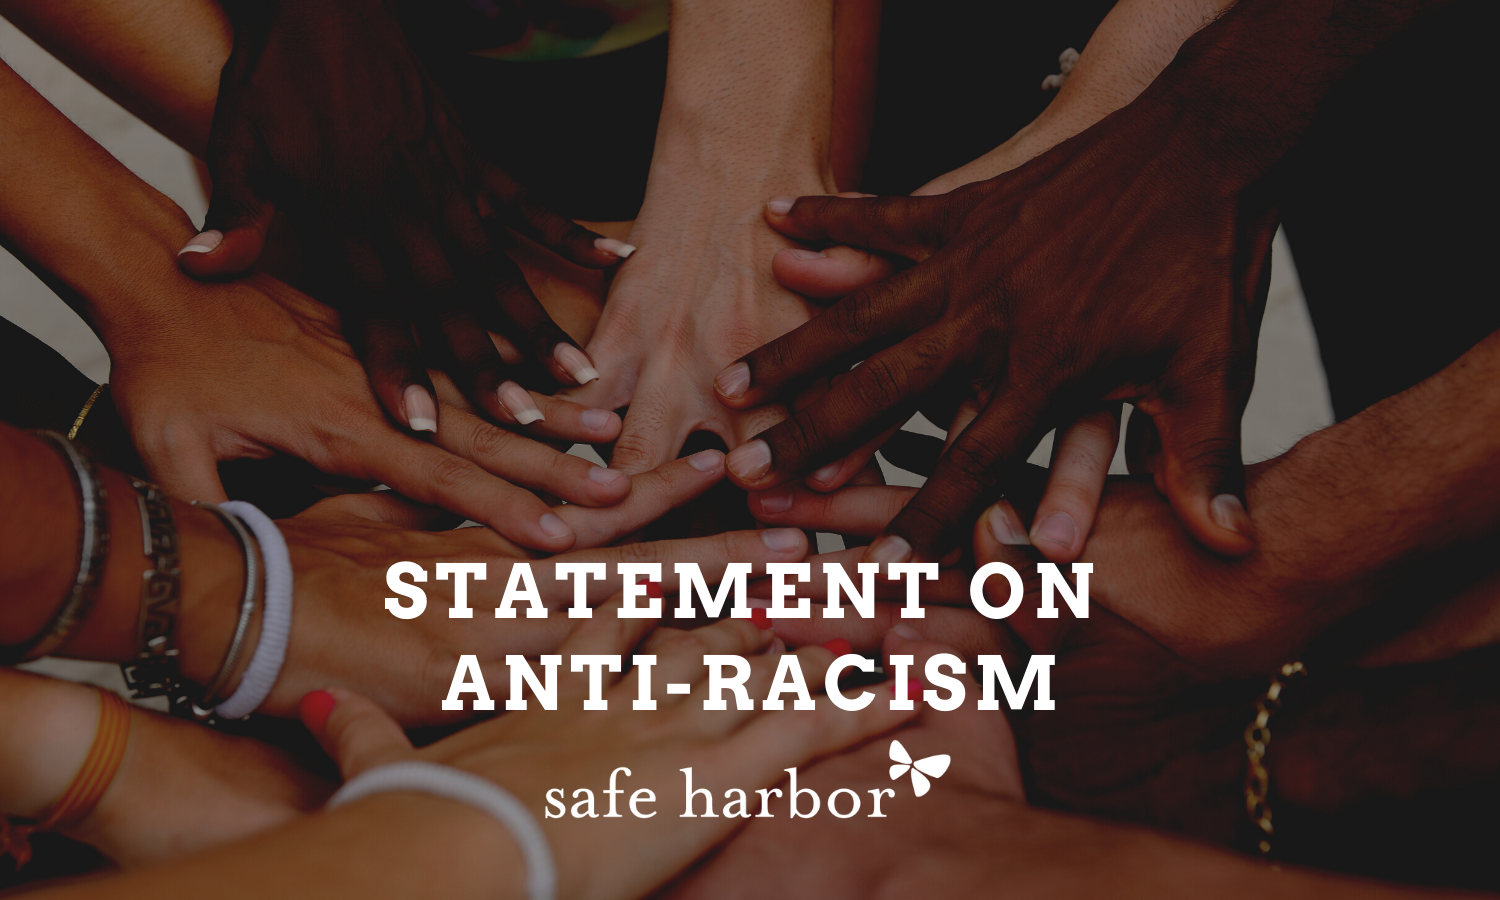 our statement on